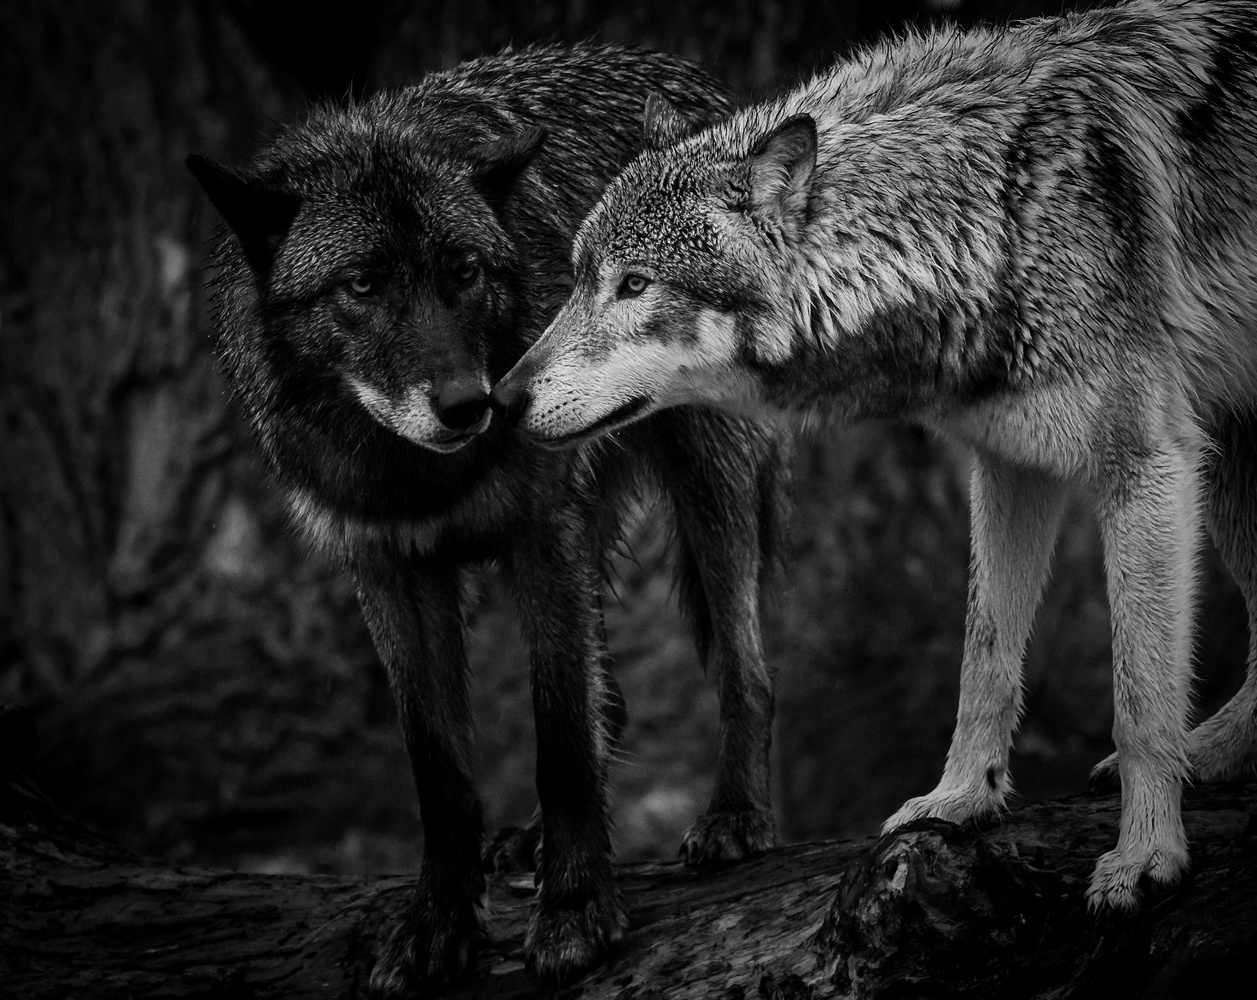 Nose to Nose by Troy Marcy